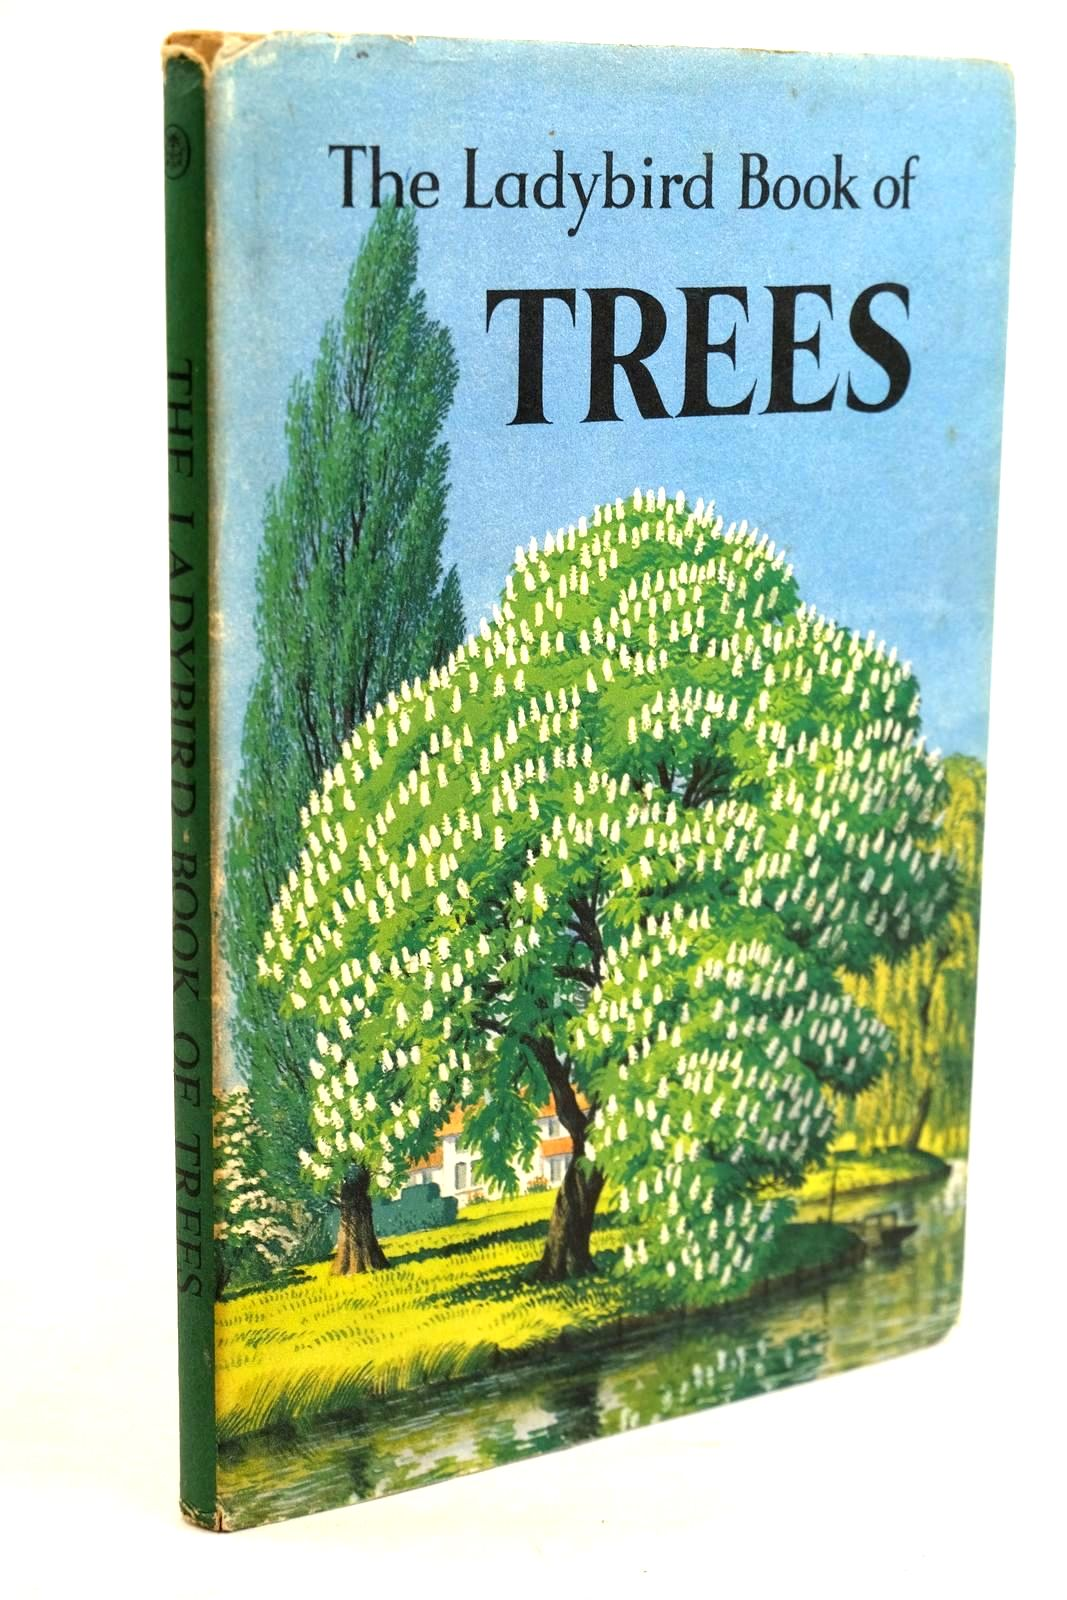 Photo of THE LADYBIRD BOOK OF TREES written by Vesey-Fitzgerald, Brian illustrated by Badmin, S.R. published by Wills & Hepworth Ltd. (STOCK CODE: 1320650)  for sale by Stella & Rose's Books